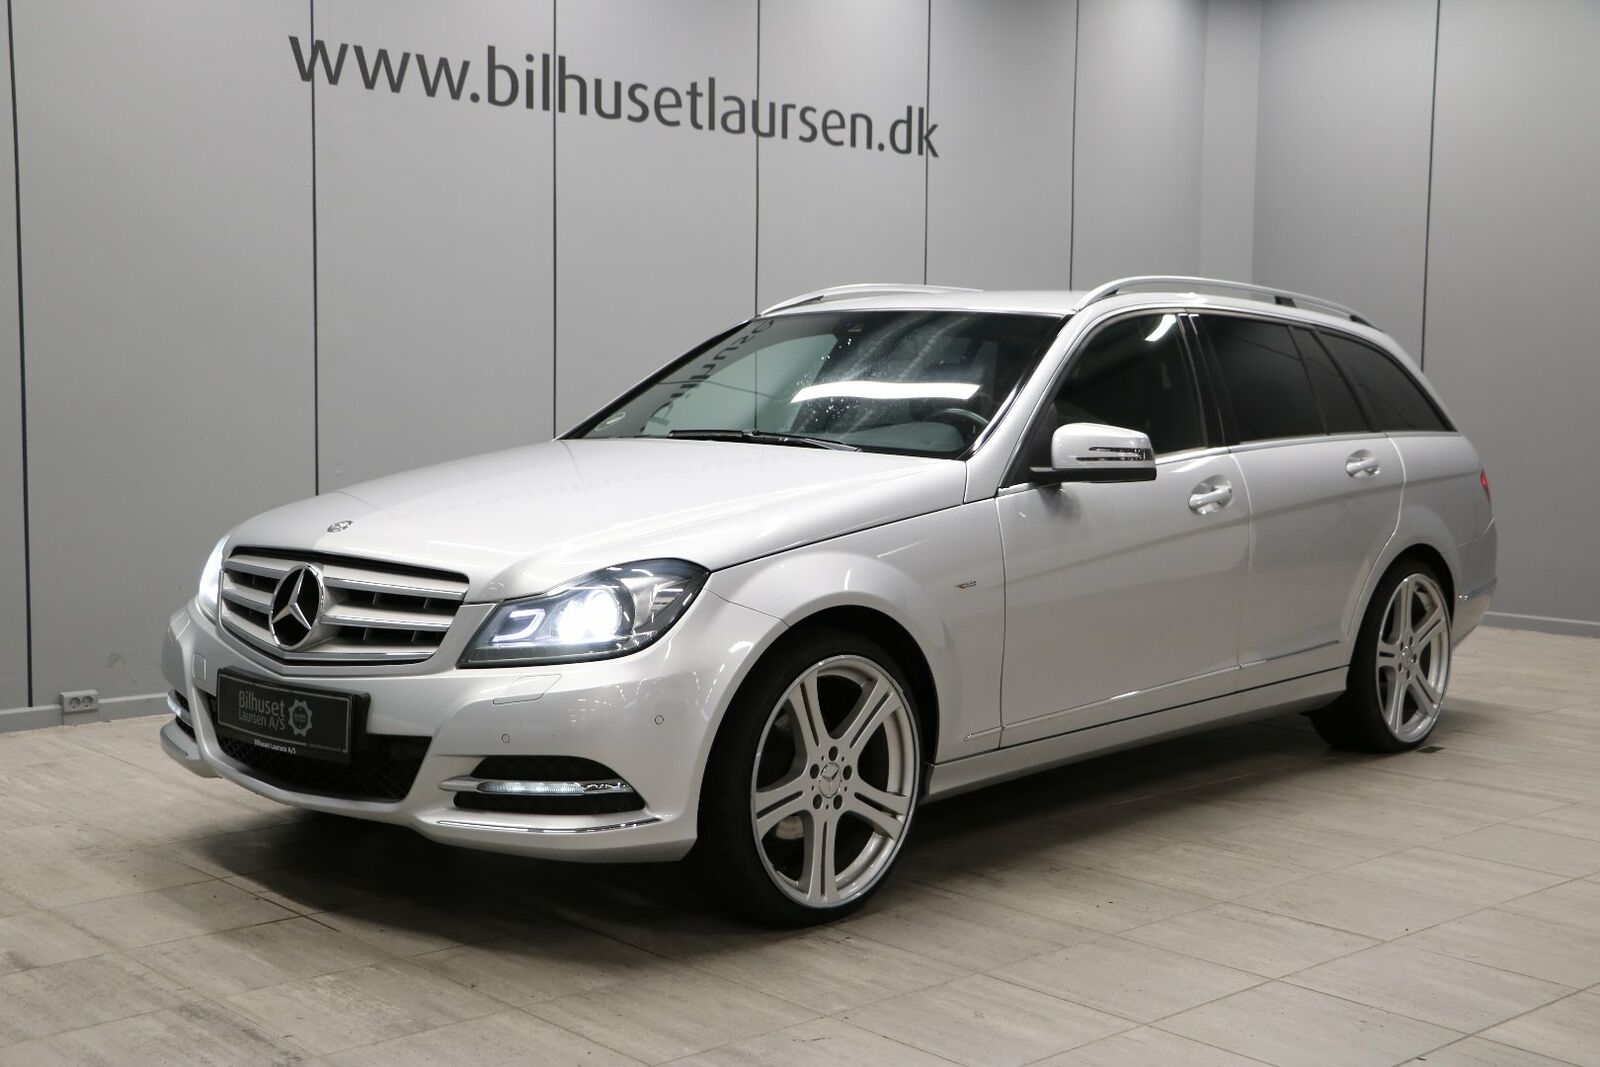 Mercedes C200 2,2 CDi Avantgarde stc. BE 5d - 134.900 kr.